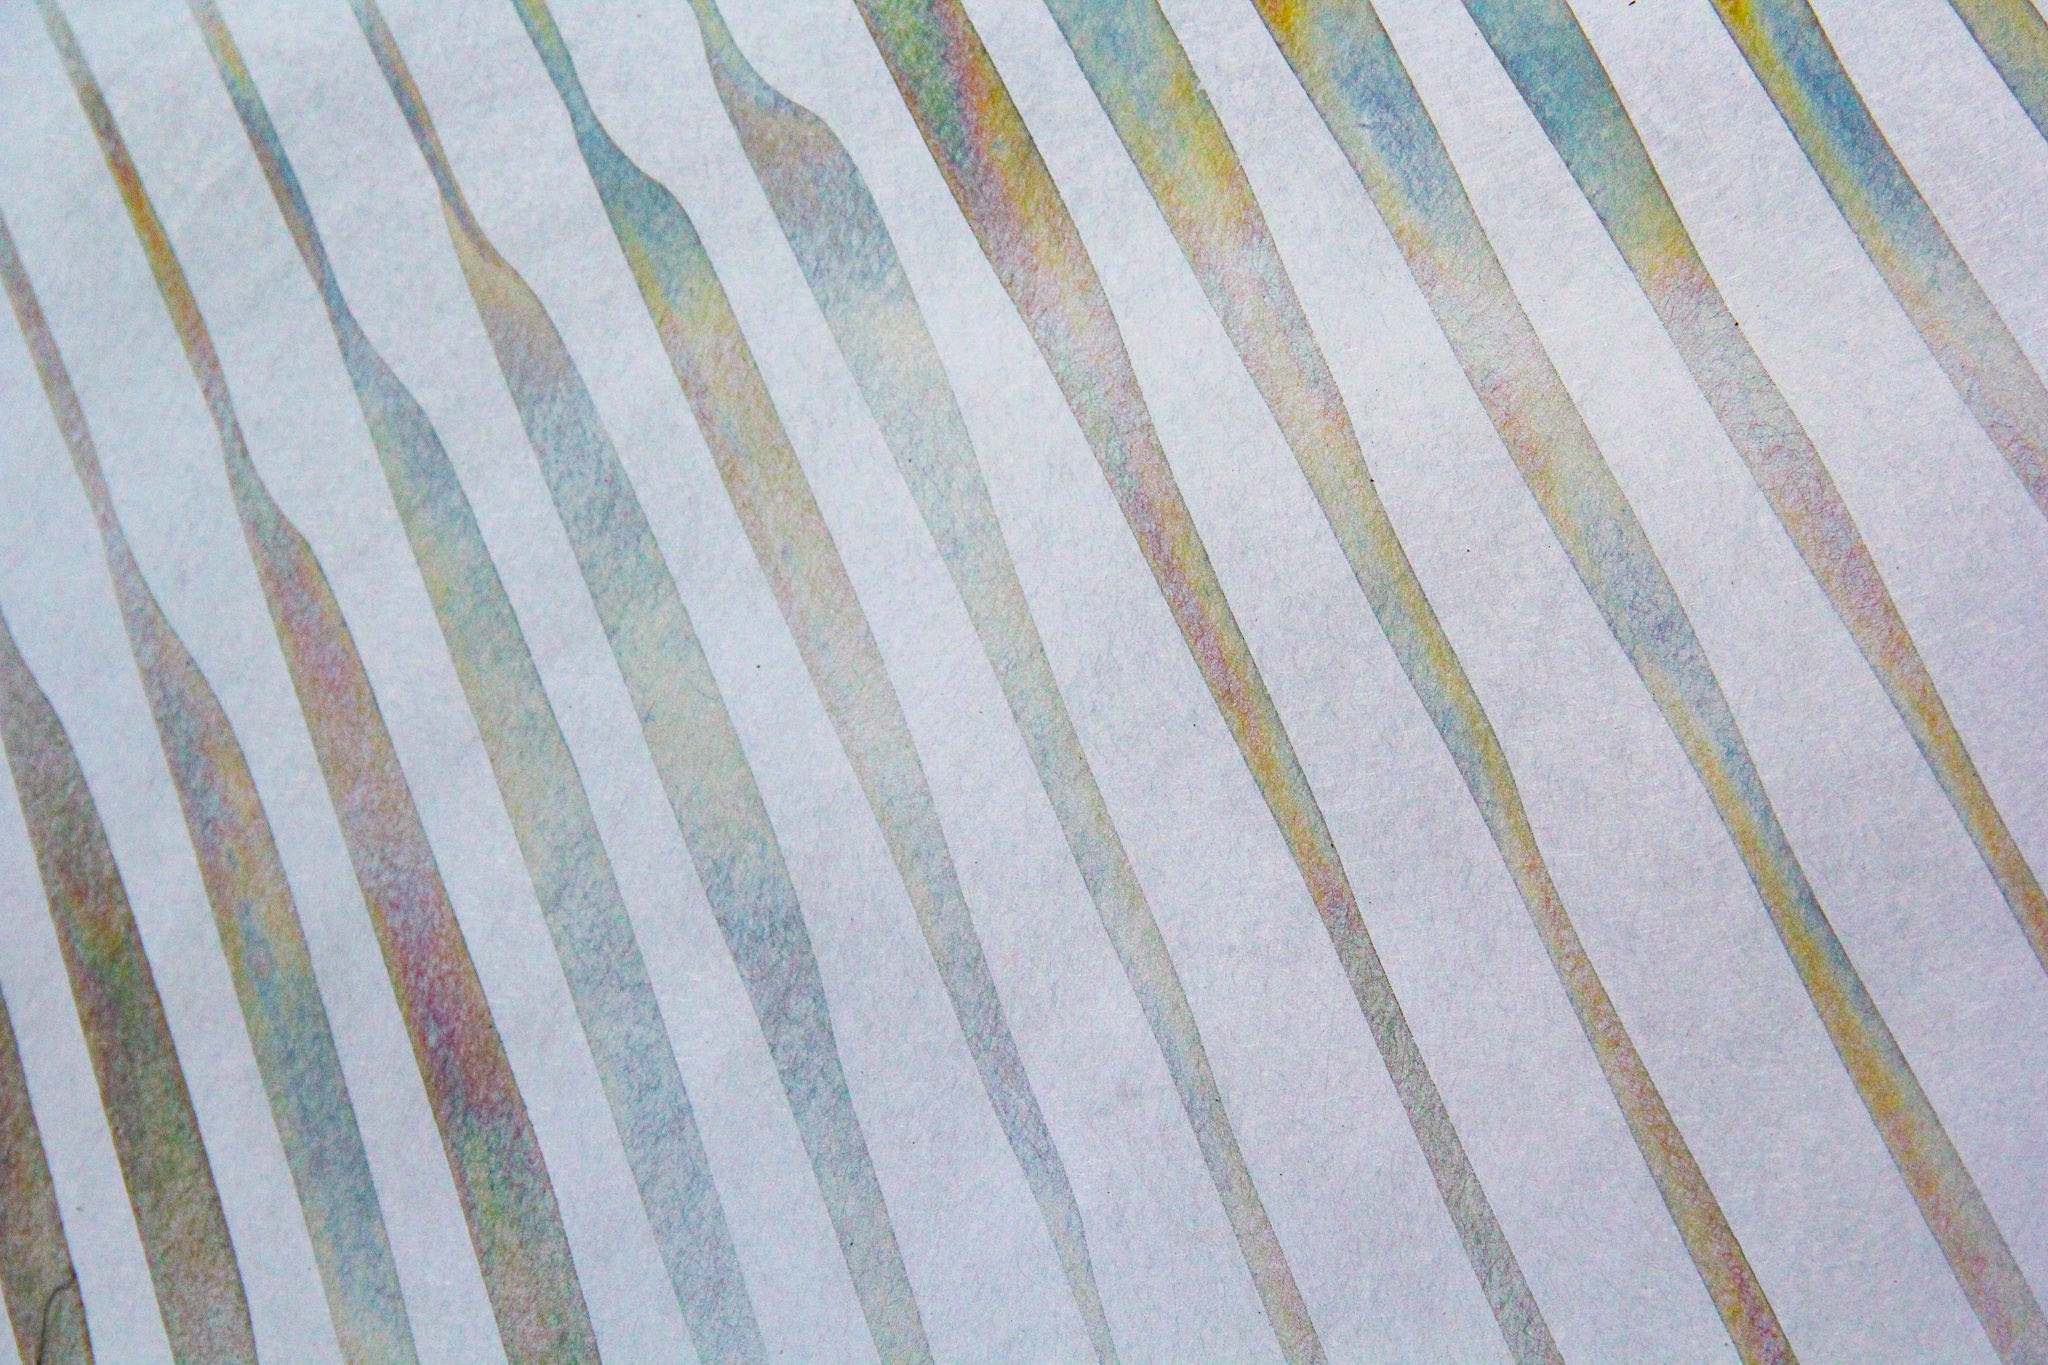 PRECISION PATINA SAMPLES – IRIDESCENT FINISH ON GALVANIZED STEEL - CLOSE-UP